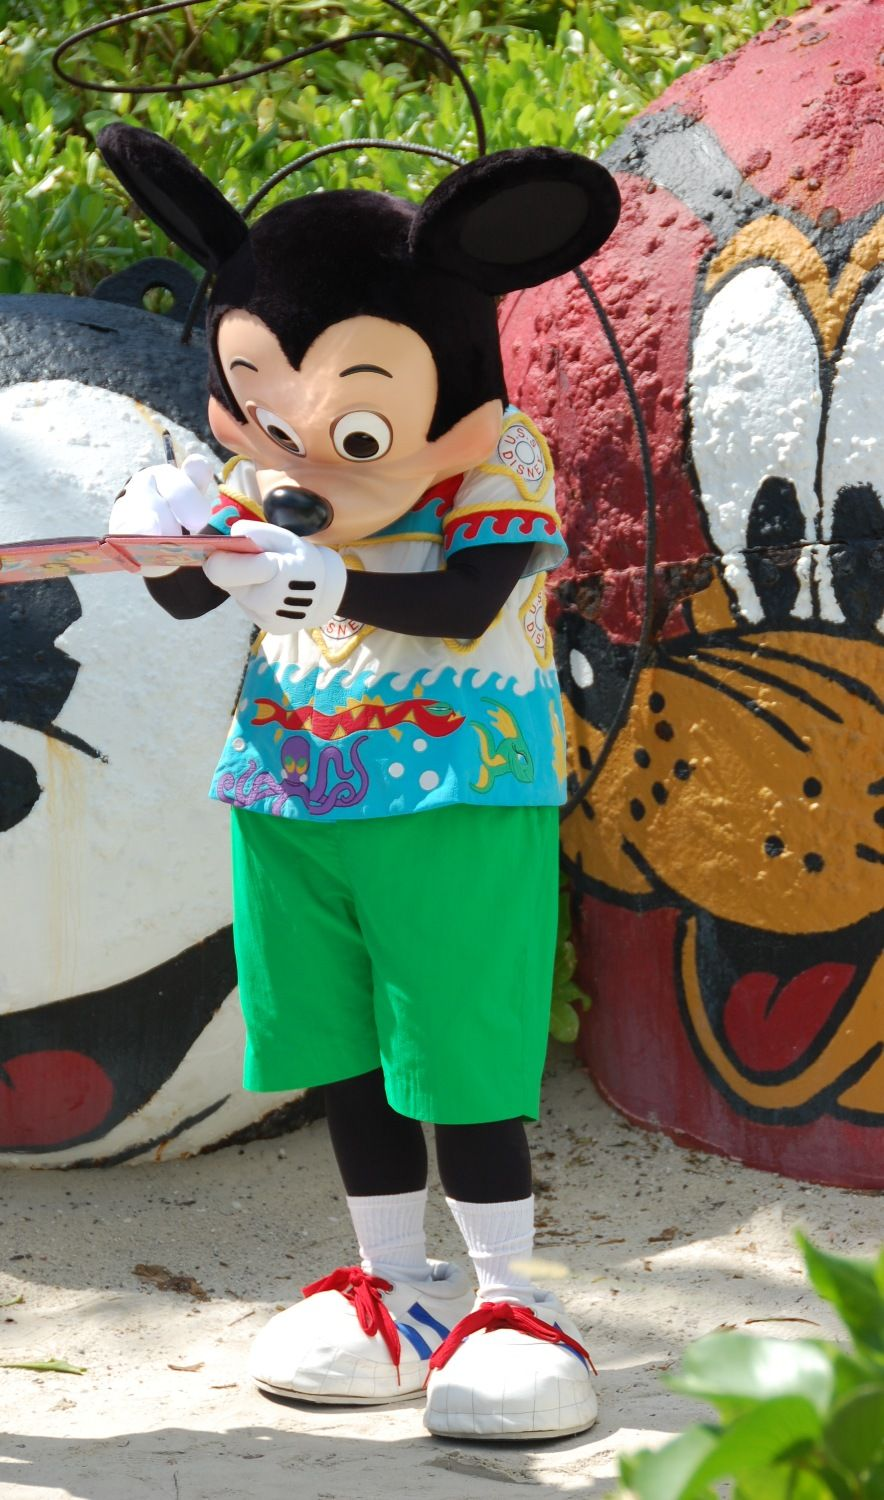 Mickey Mouse at Castaway Cay, Disney's private island.  Disney Cruise Line.